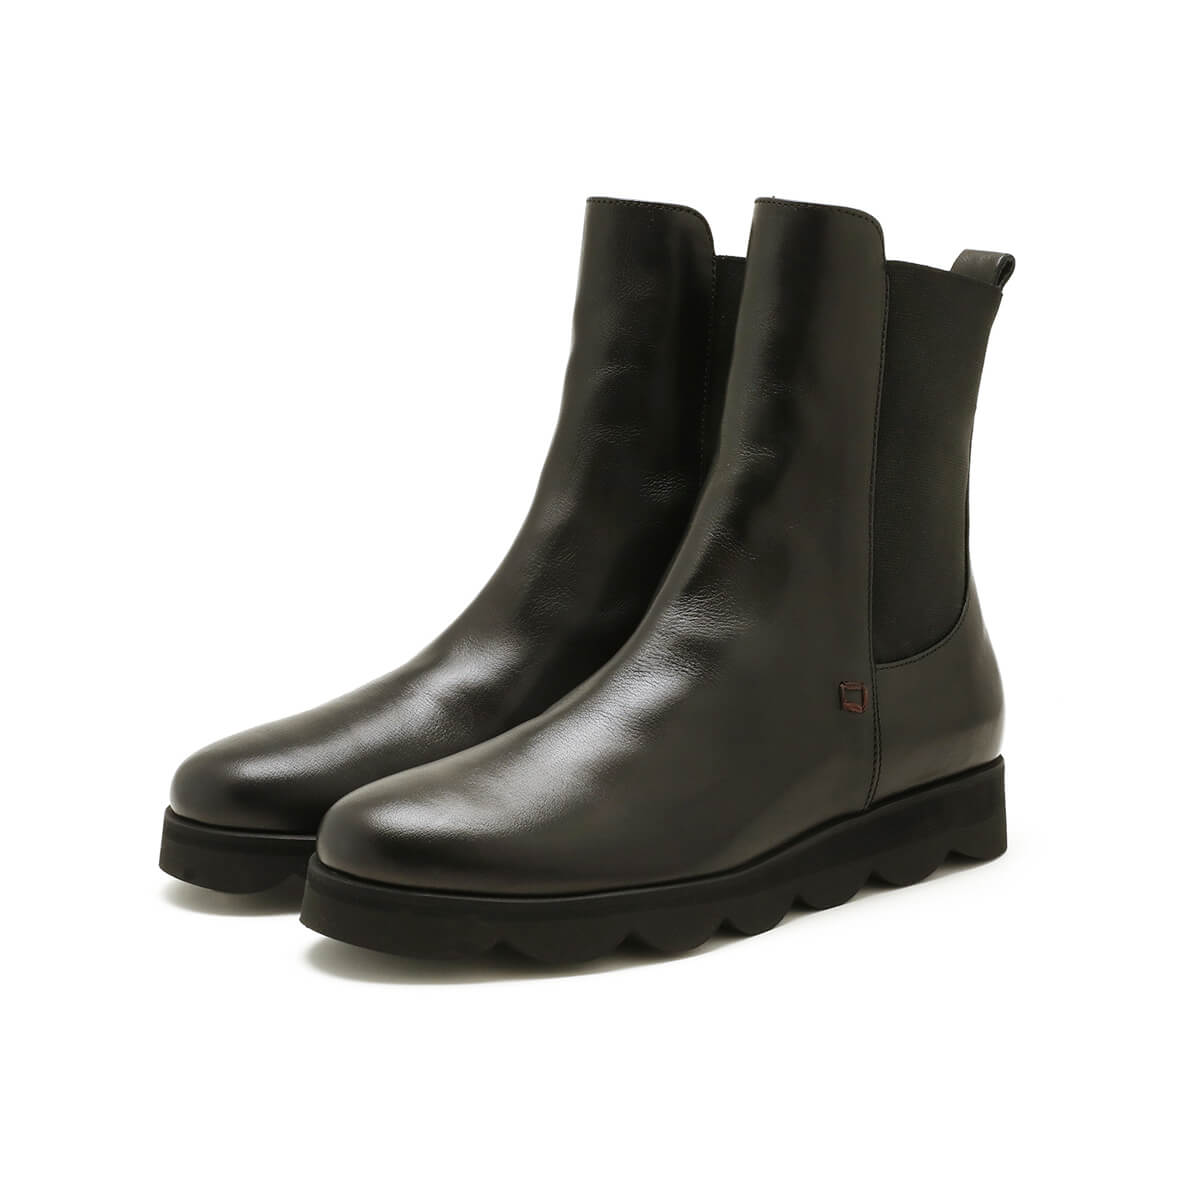 Black dual side goring bootie with light rubber sole